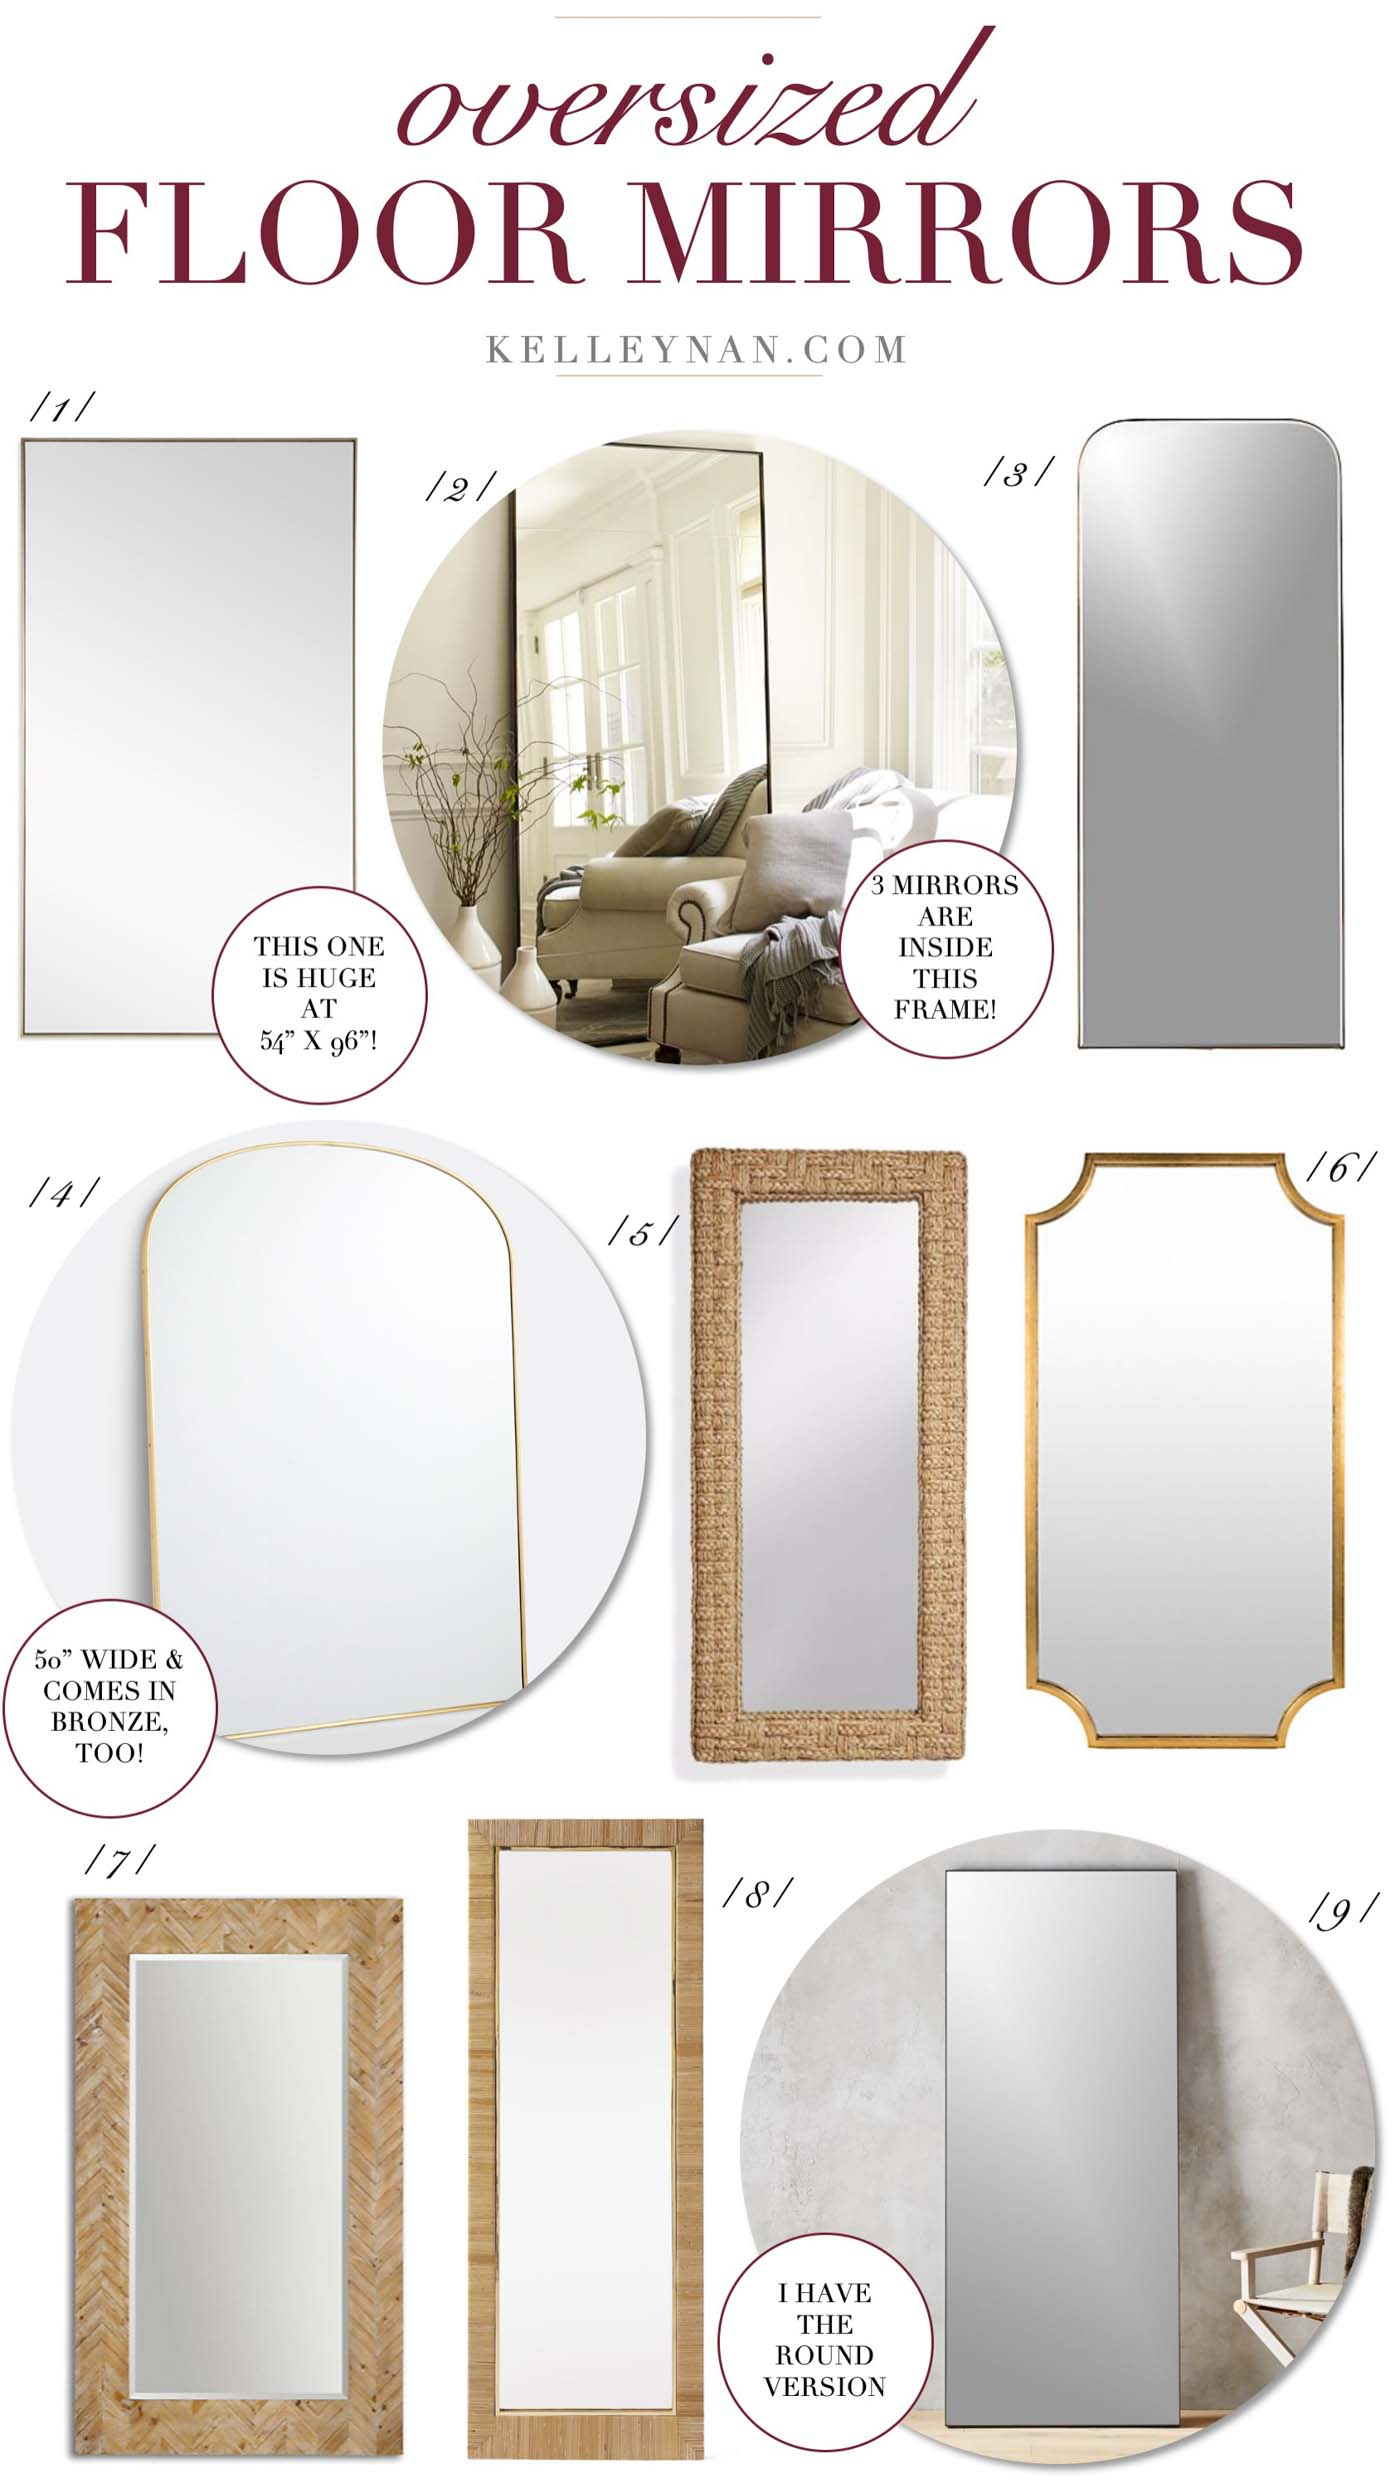 19 Oversized Floor Mirrors To Check Out This Weekend Kelley Nan